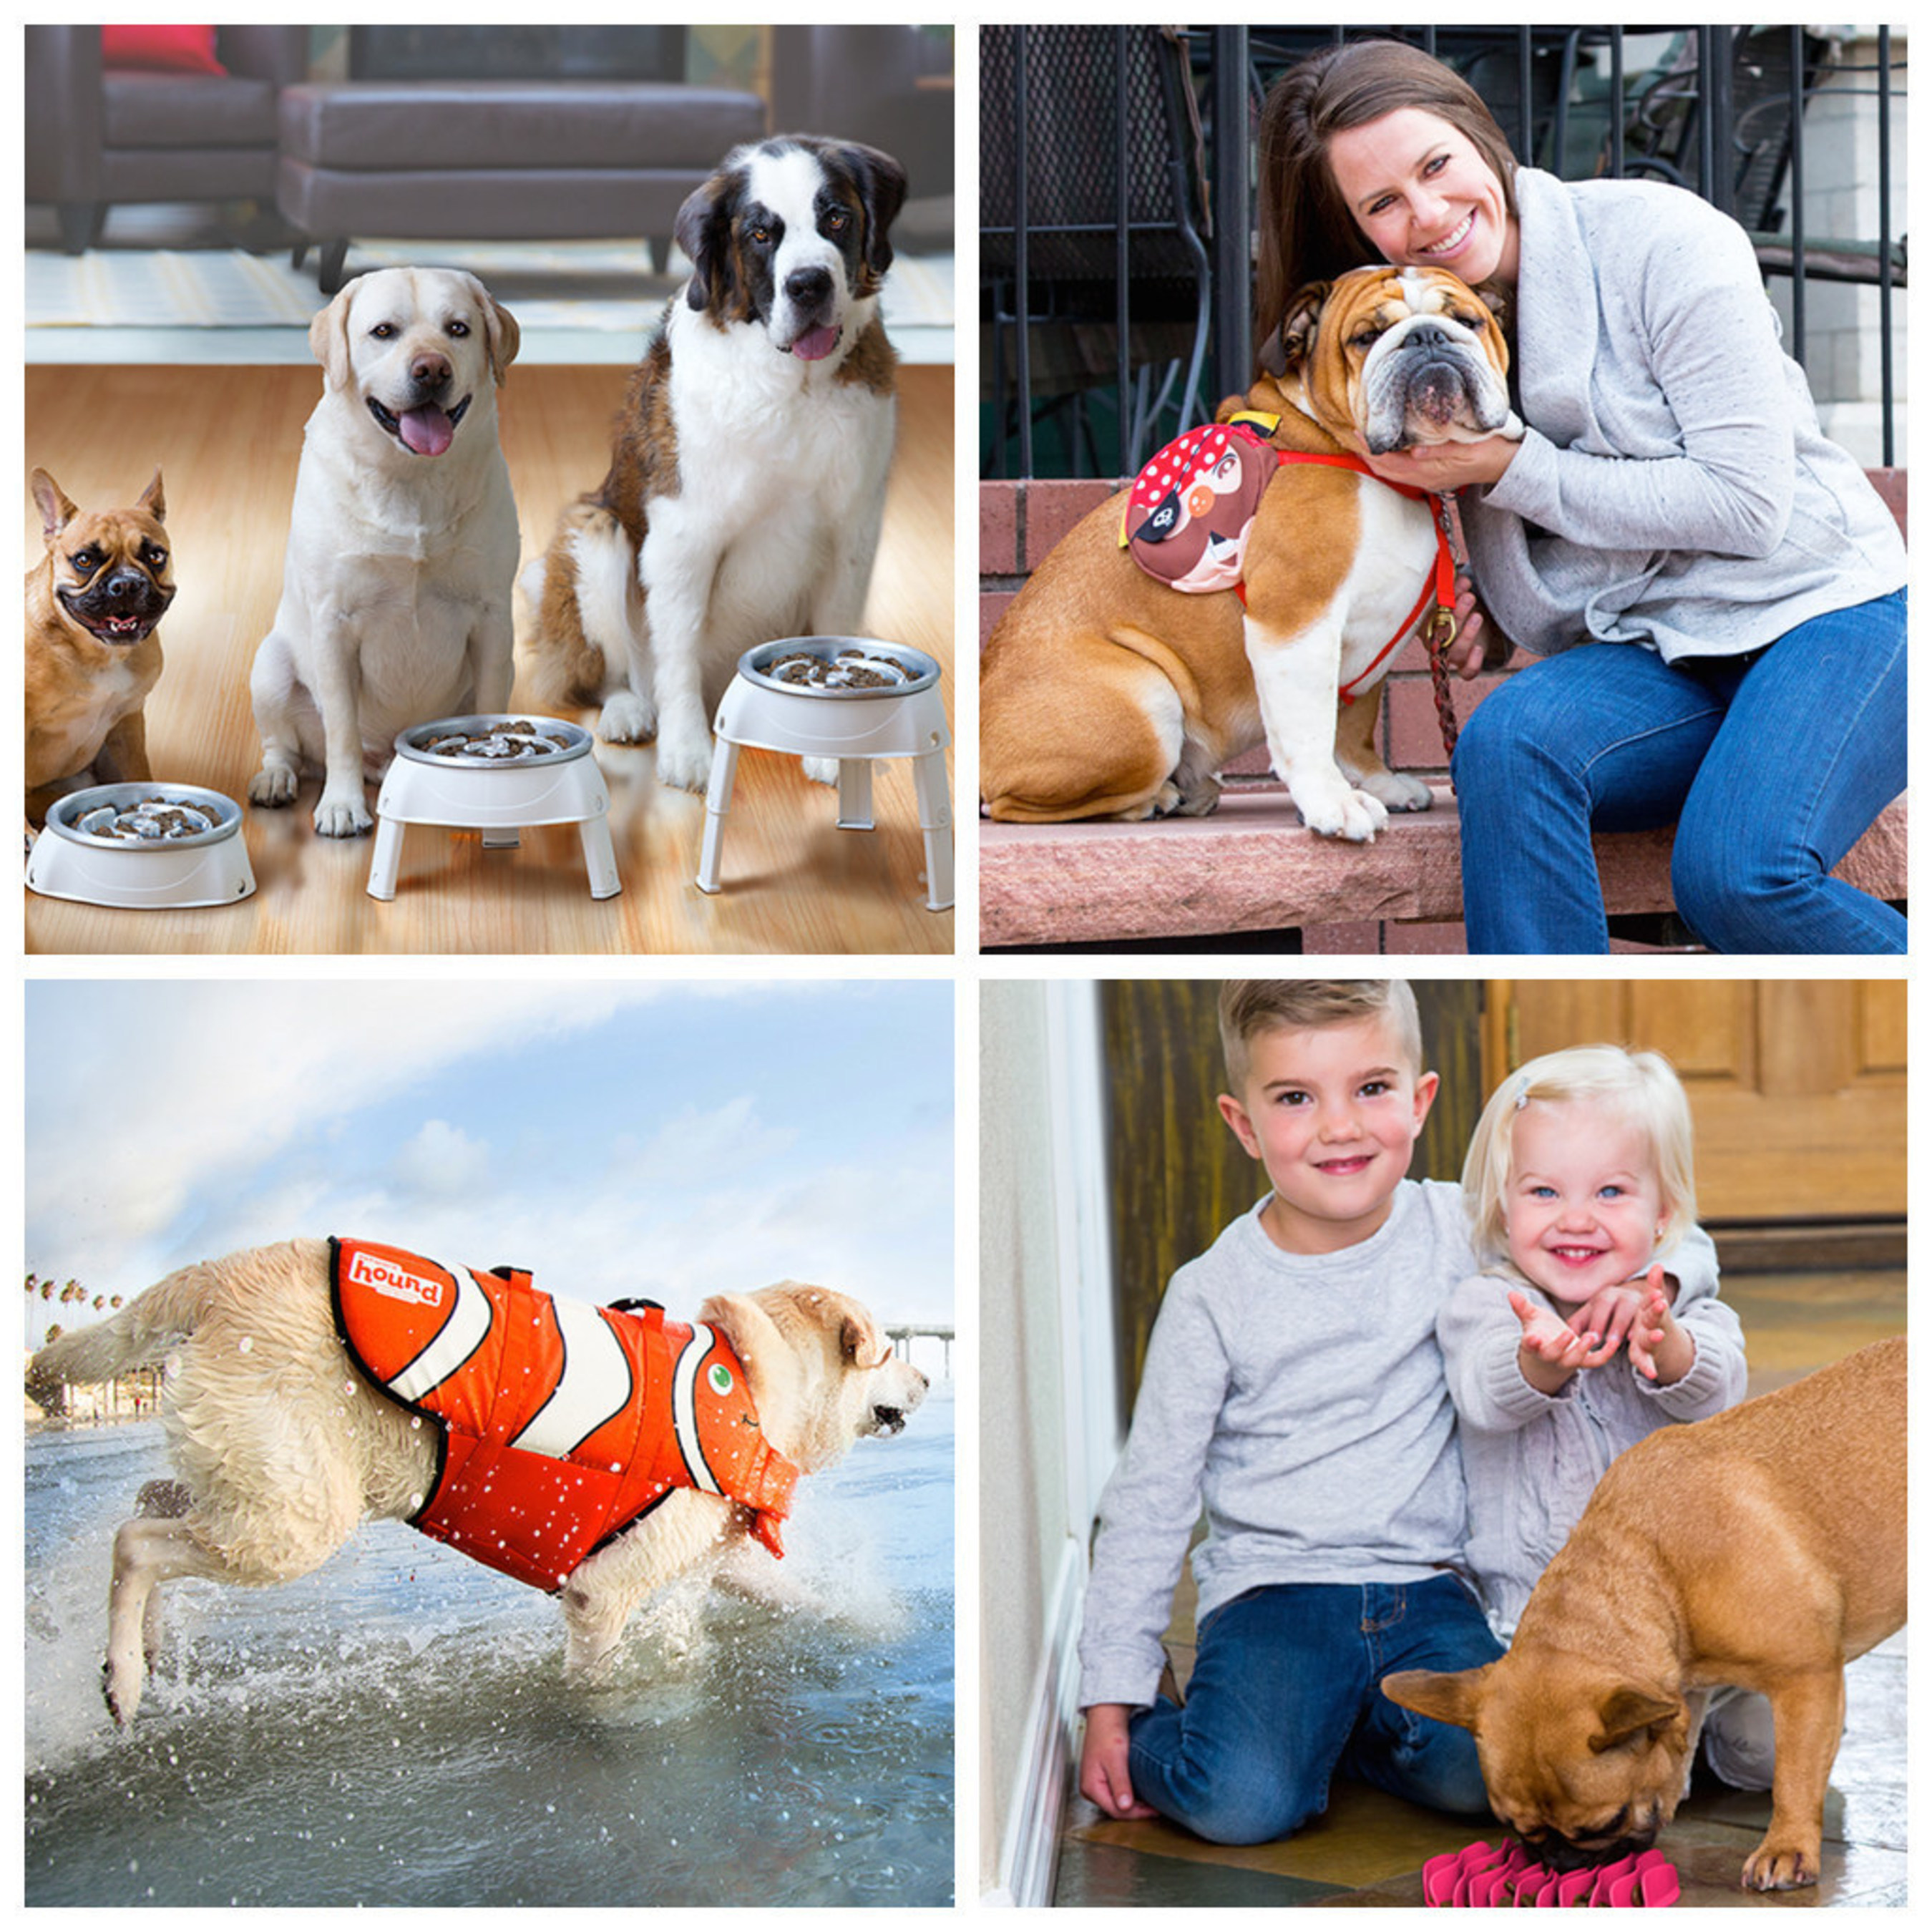 From top left: The Outward Hound 3in1 UP Feeder(TM), The Outward Hound Pal Pak(TM), The Outward Hound Fun Fish(TM) Life Jacket, The Outward Hound Fun Feeder(TM) Mat.